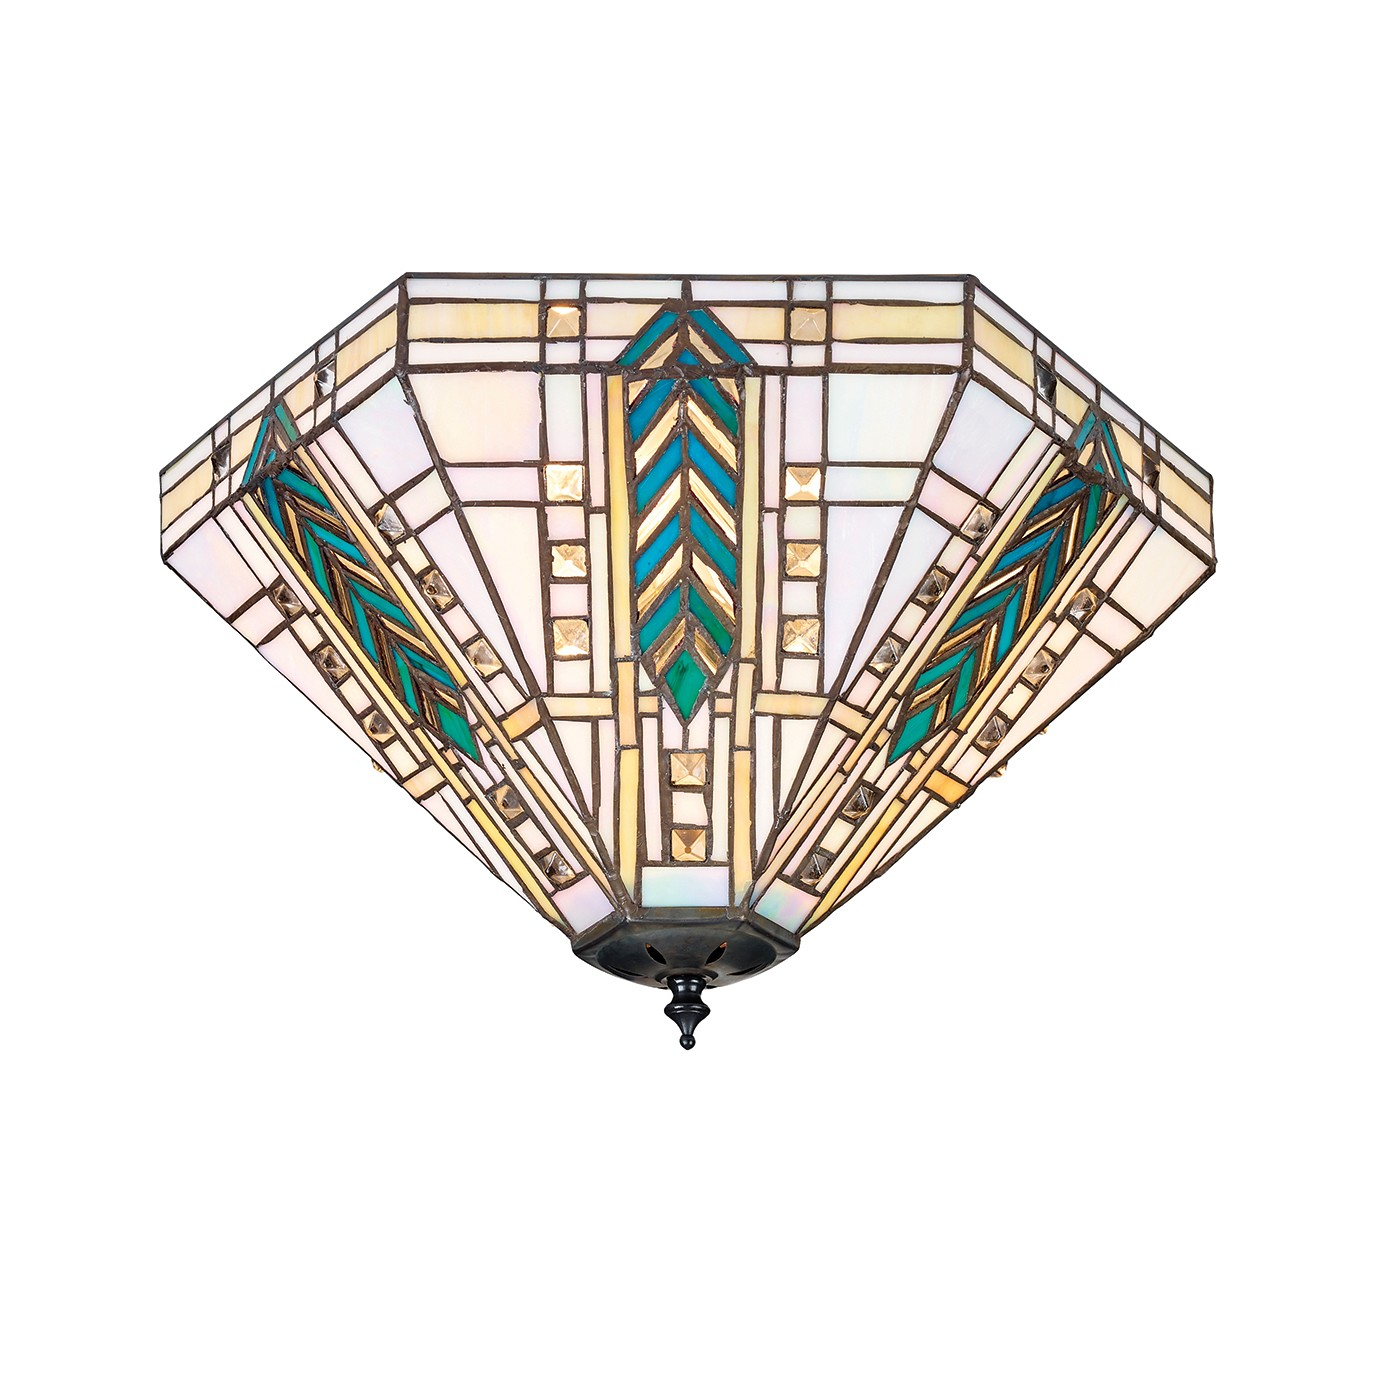 Lloyd 70667 Tiffany Down 3 Light Floor Lamp Lighting Bug